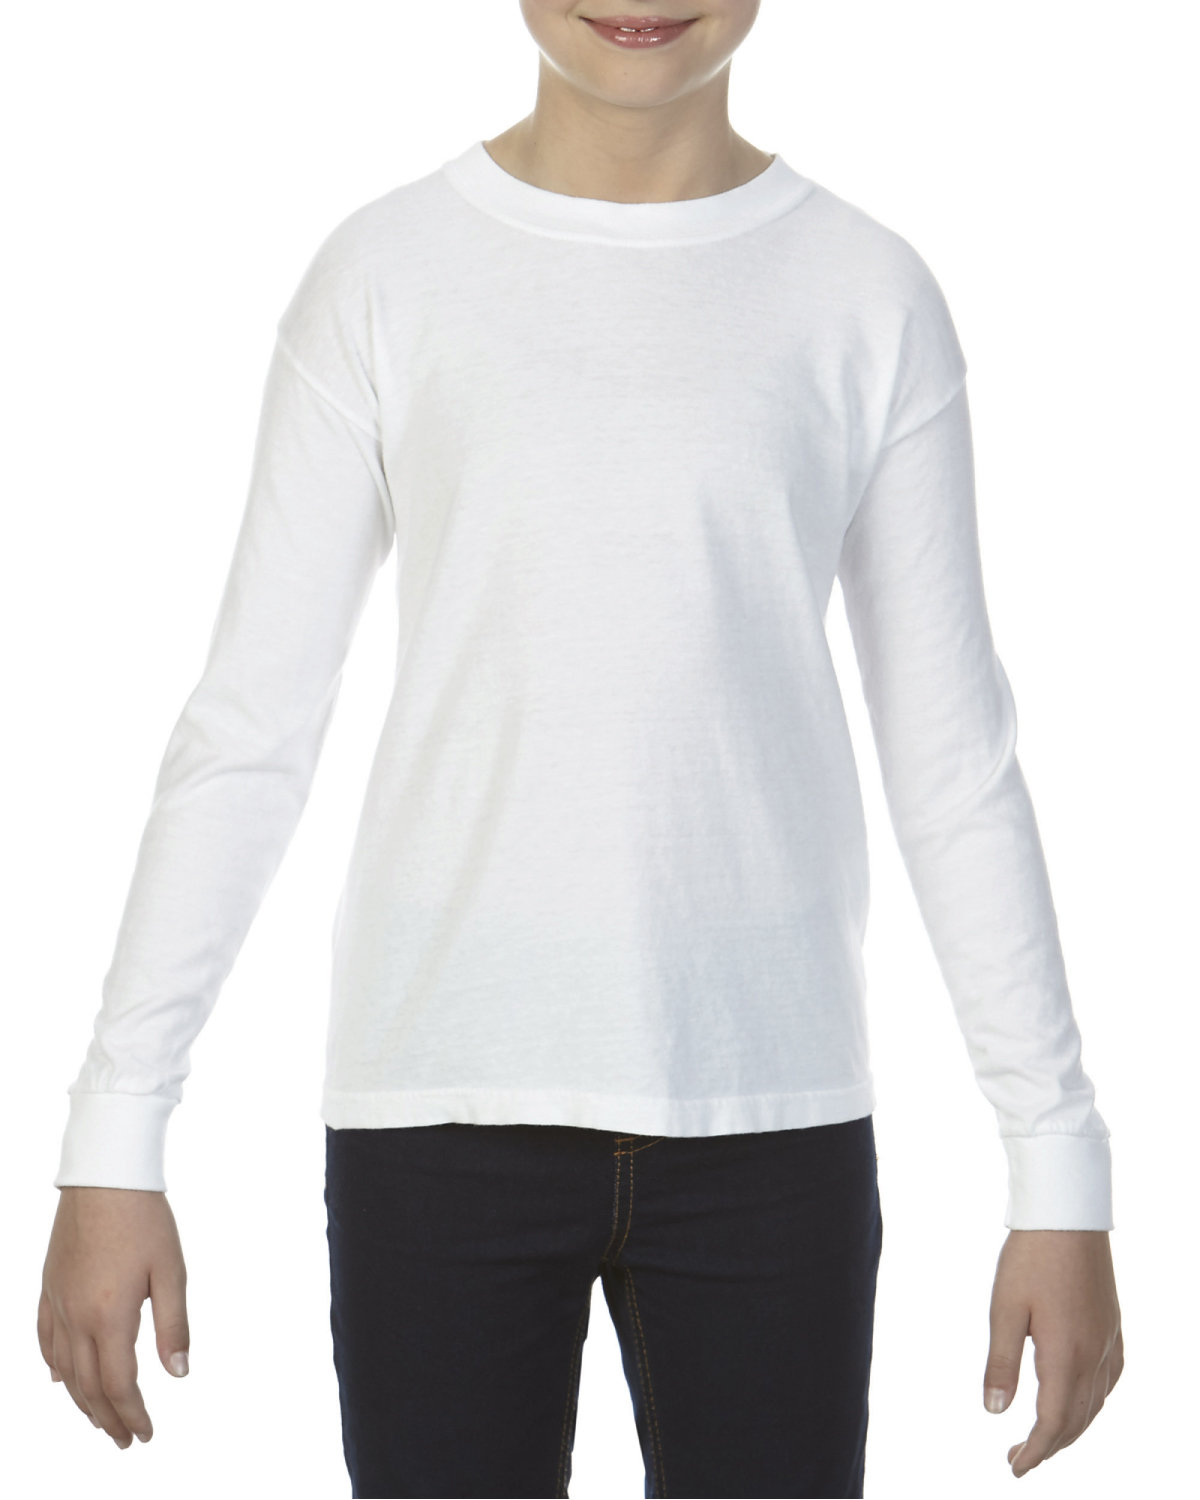 Comfort Colors Youth Garment-Dyed Long-Sleeve T-Shirt WHITE